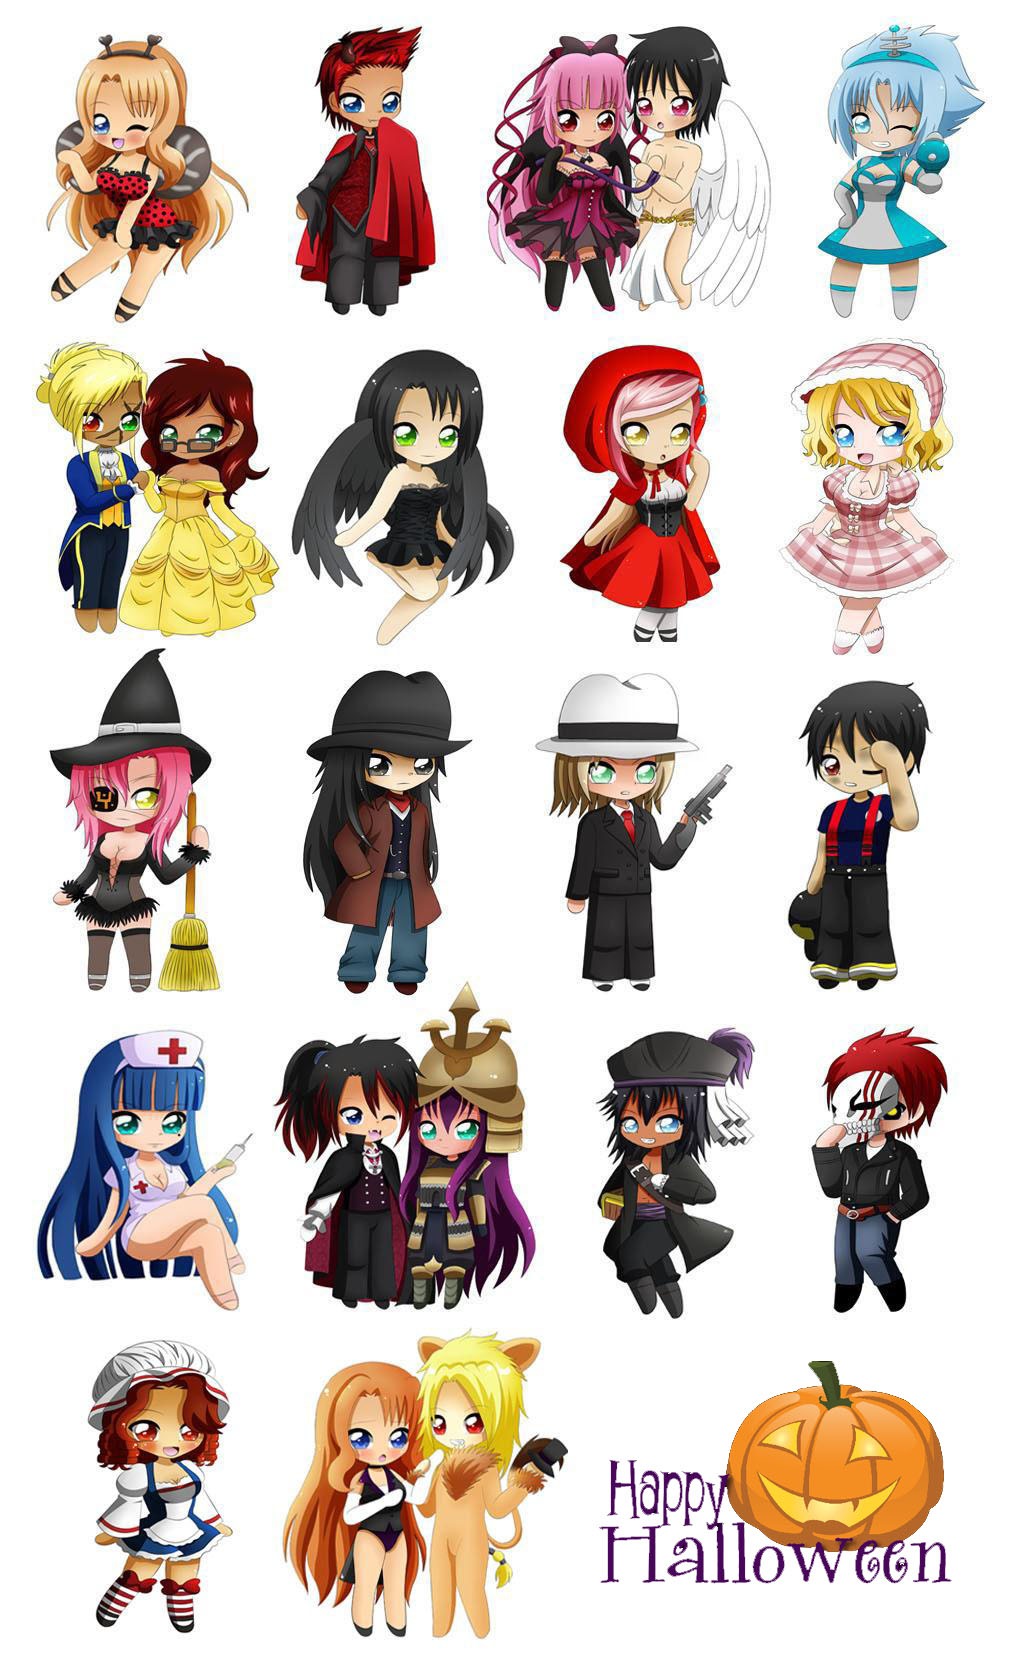 Anime Characters For Halloween : Bigc chibi halloween project by jusace on deviantart